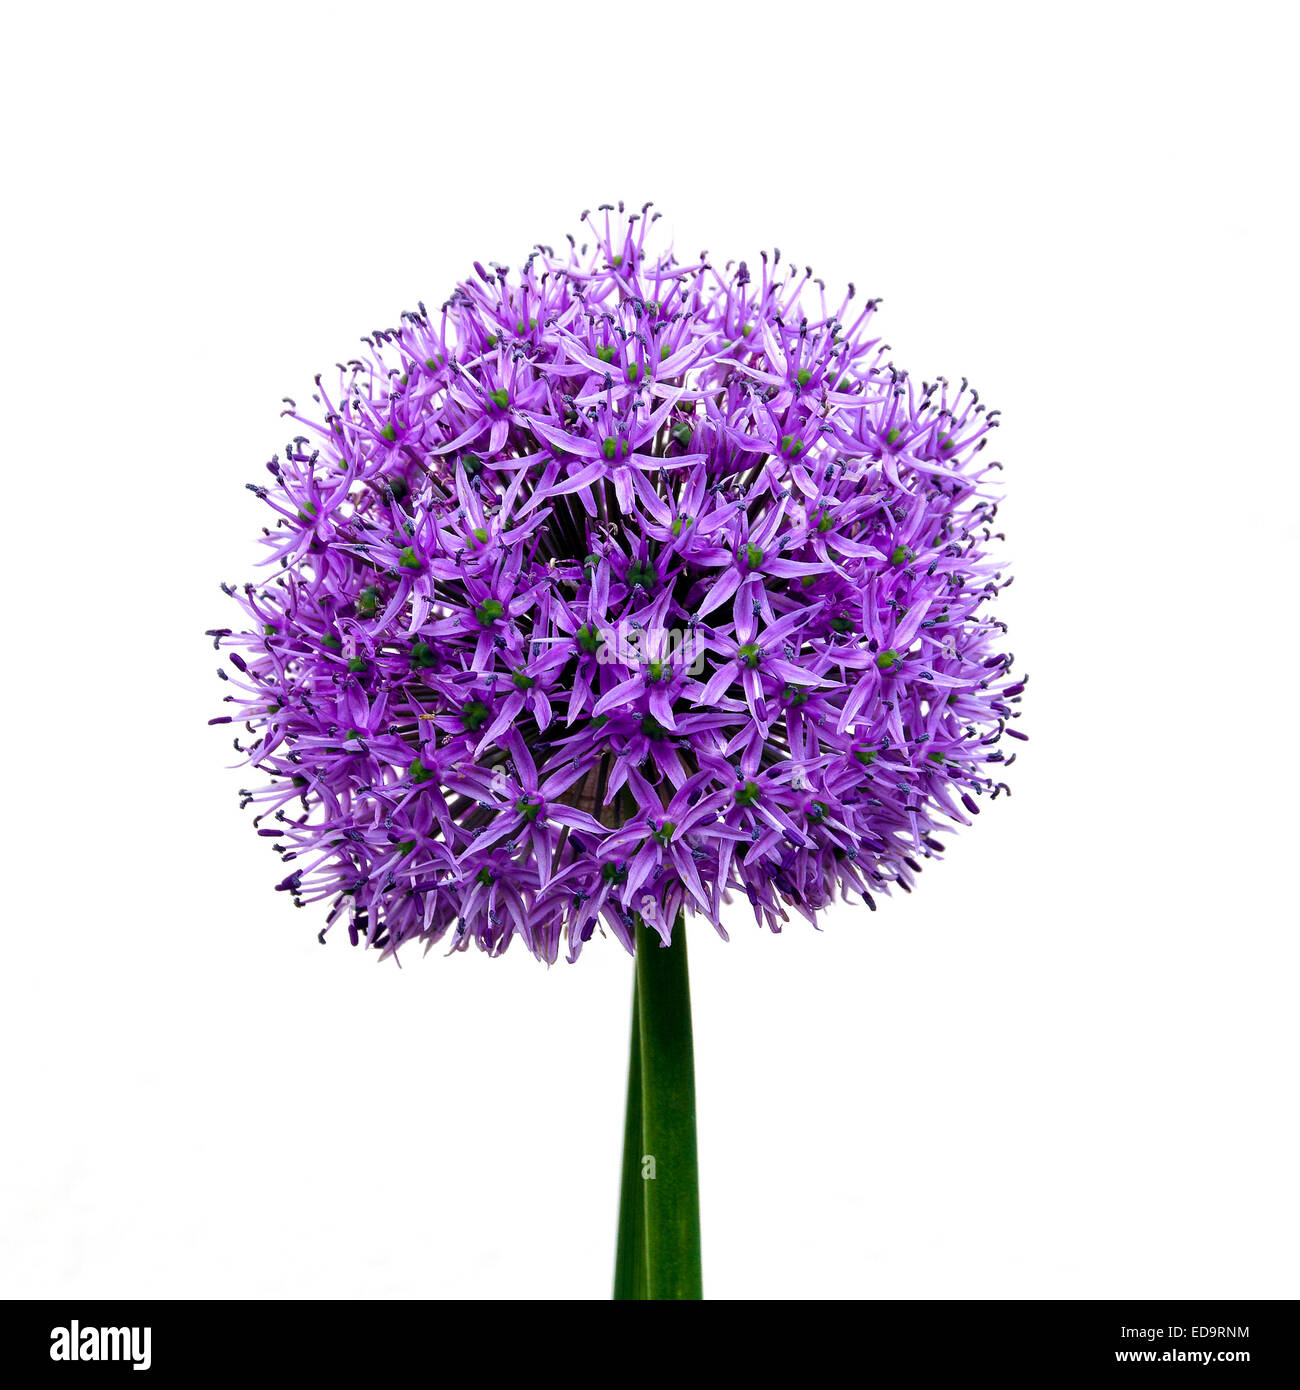 Allium plant against white background - Stock Image